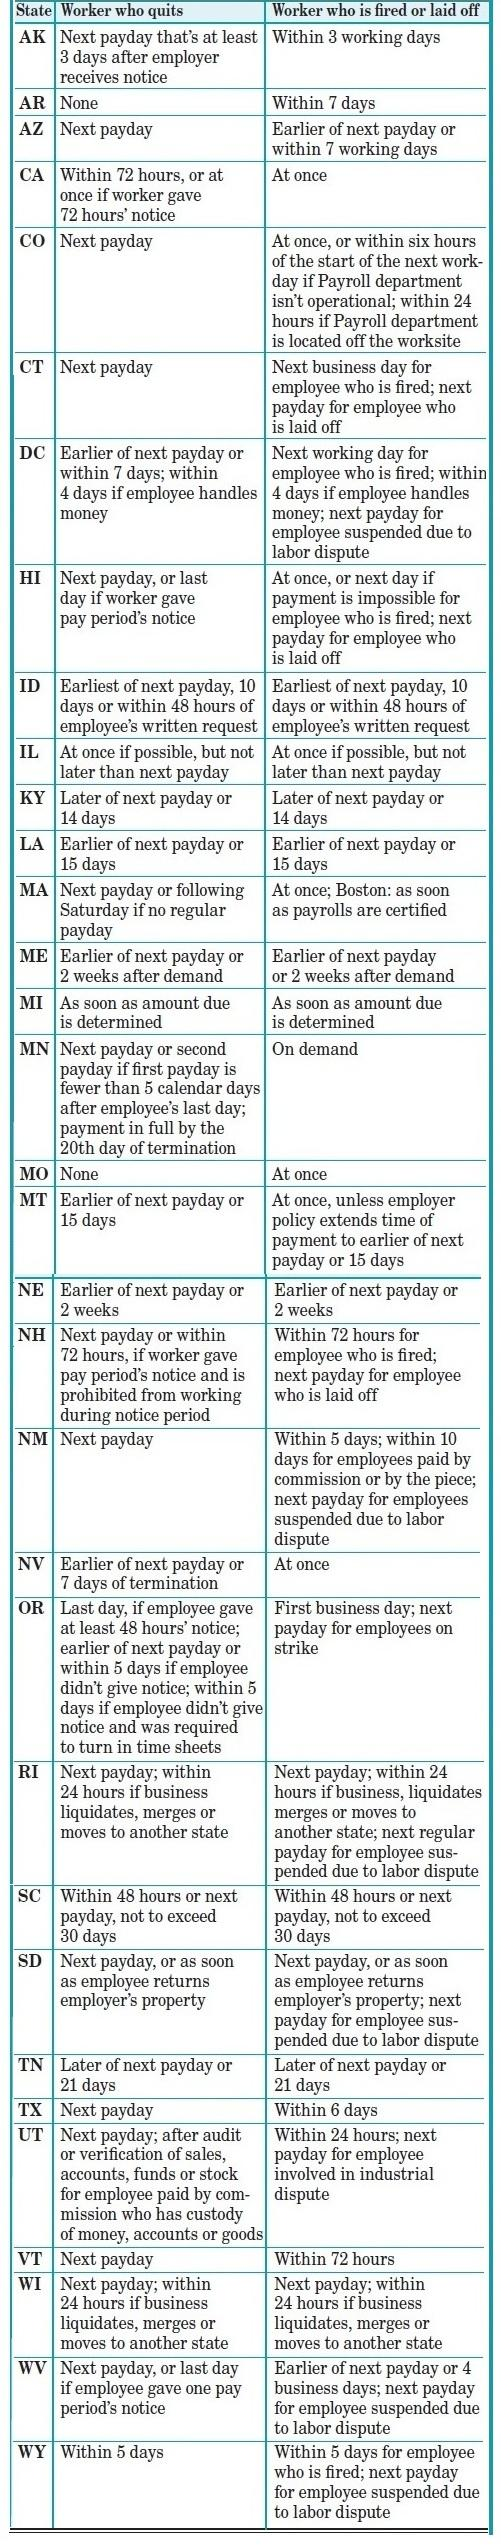 State-by-State Chart on Final-Pay Laws